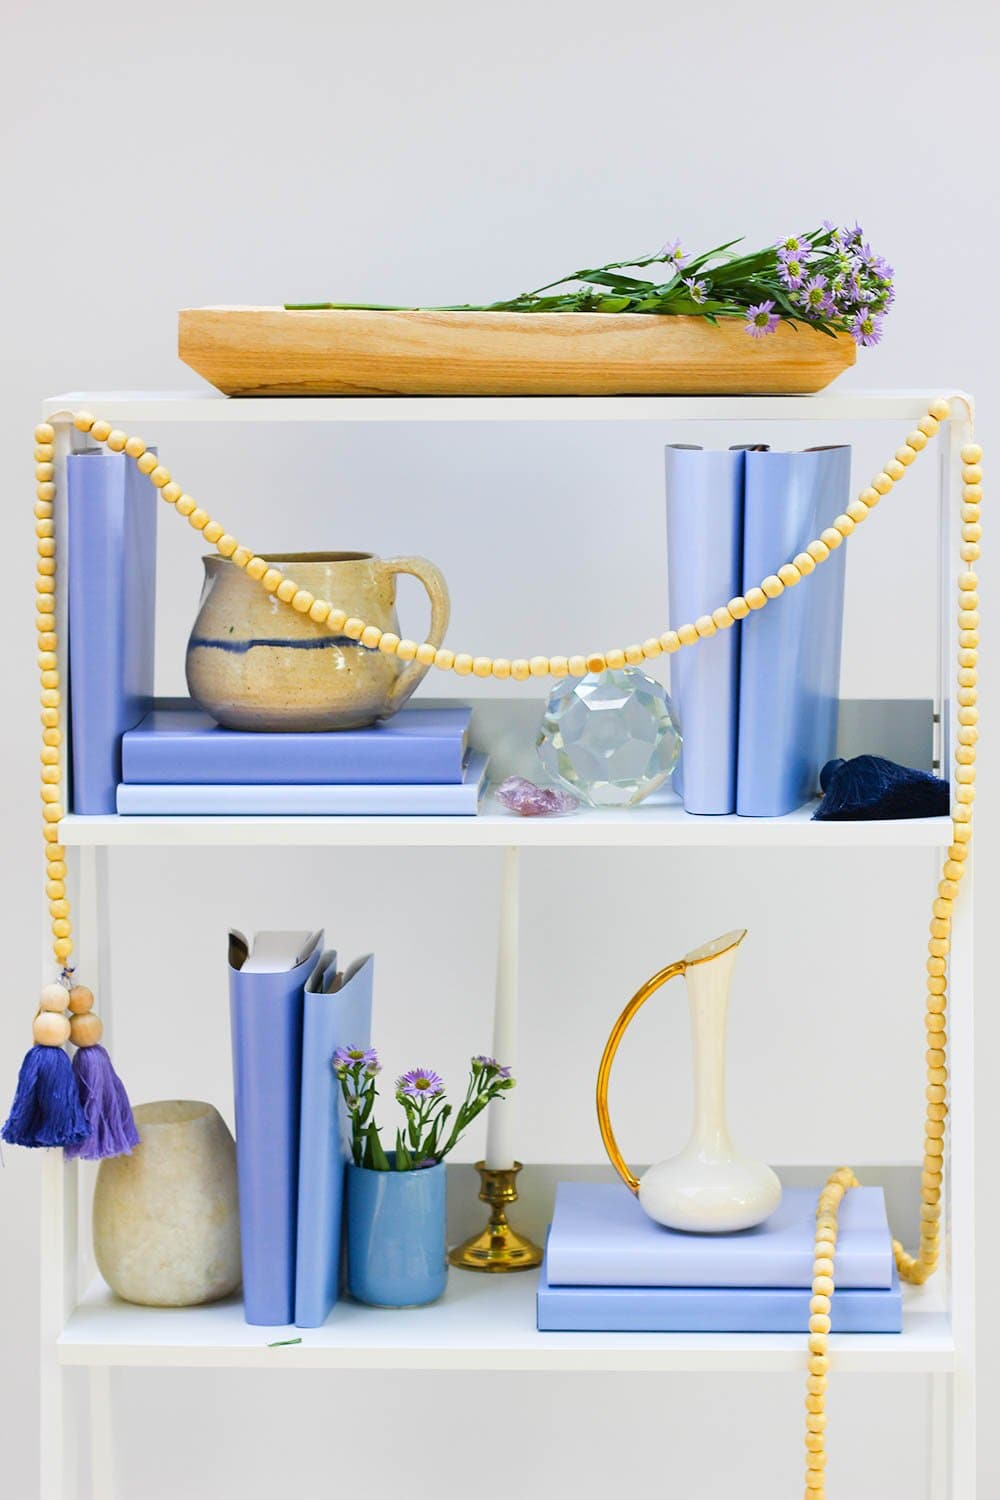 Styled periwinkle book shelf with periwinkle books from periwinkle book covers